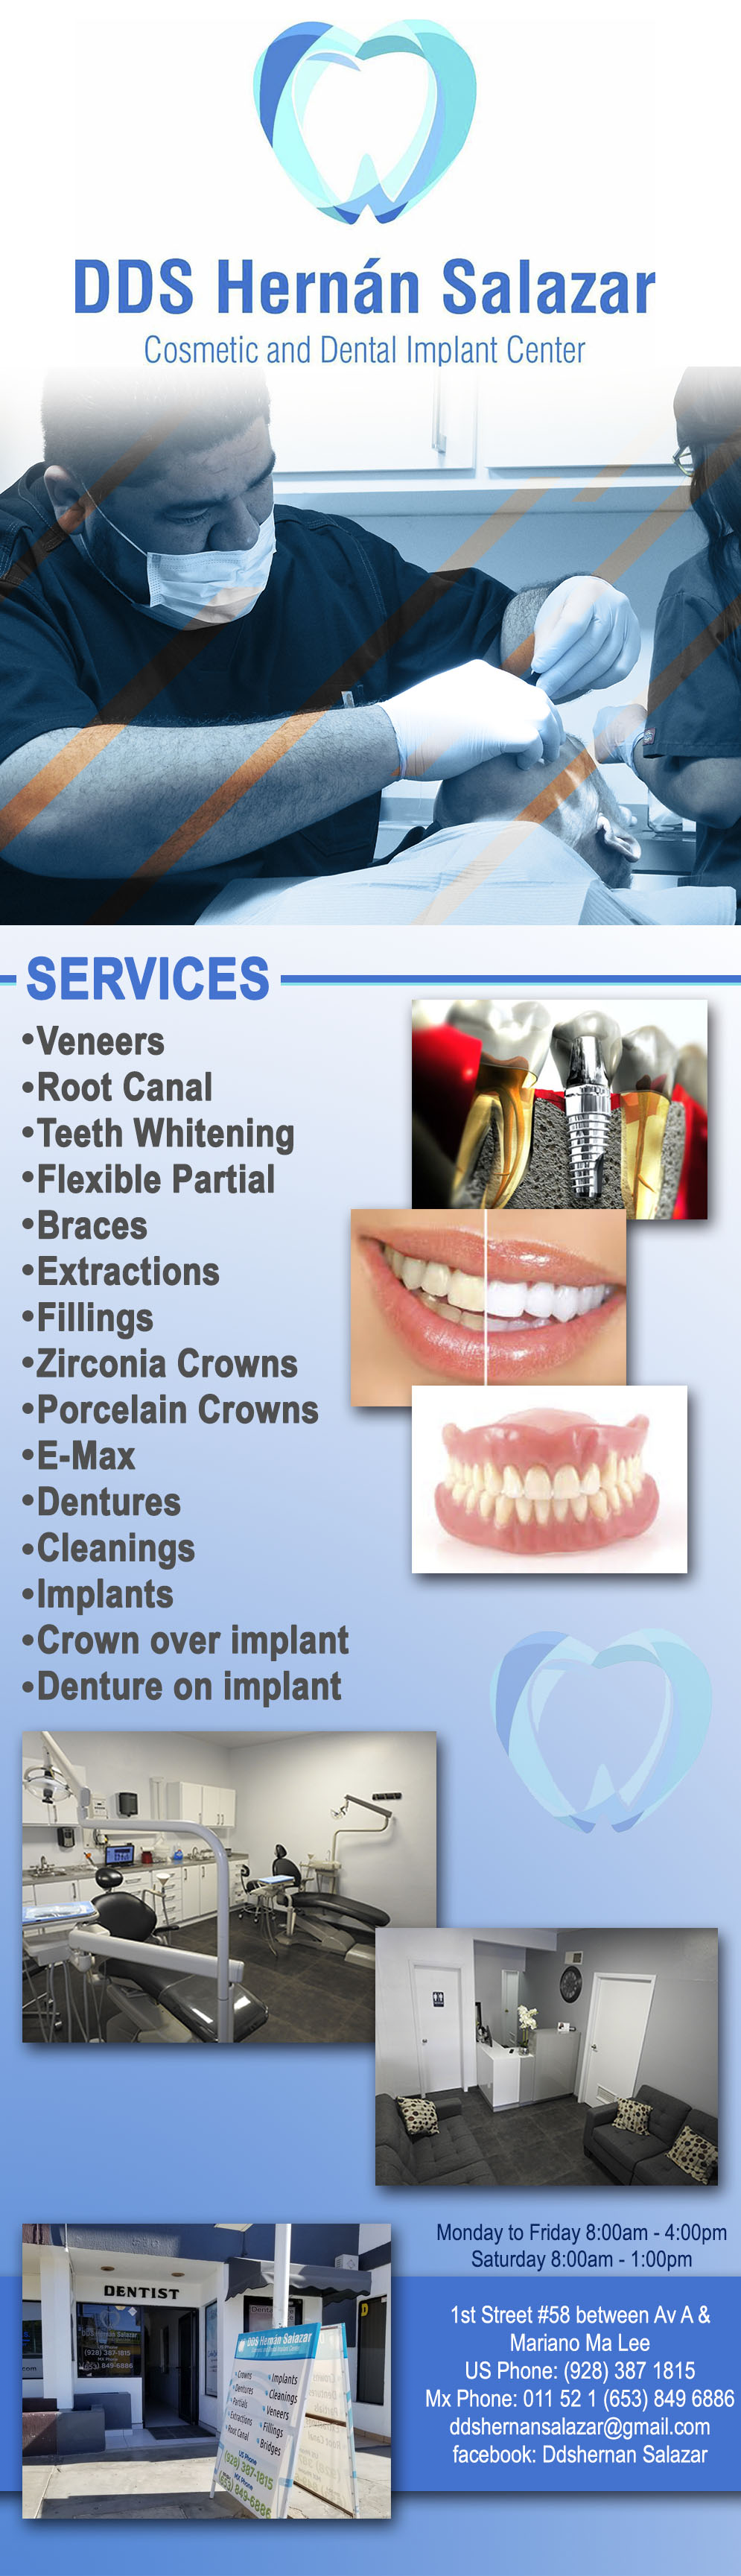 DDS Hernán Salazar in Algodones  in Algodones  Veneers